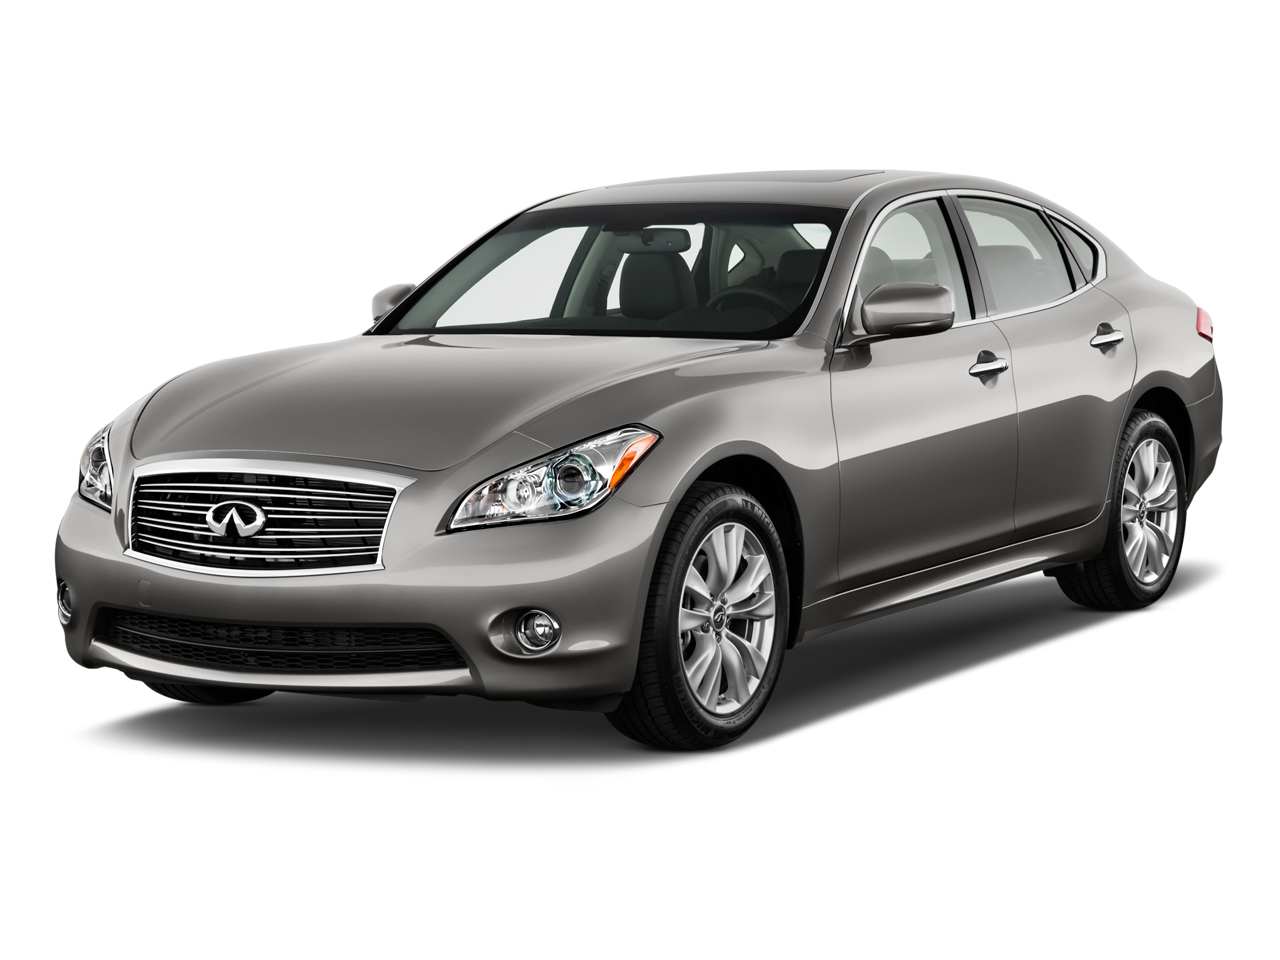 2012 infiniti m37 4 door sedan awd angular front exterior view 100350796 h - 2012 Infiniti M37x Awd